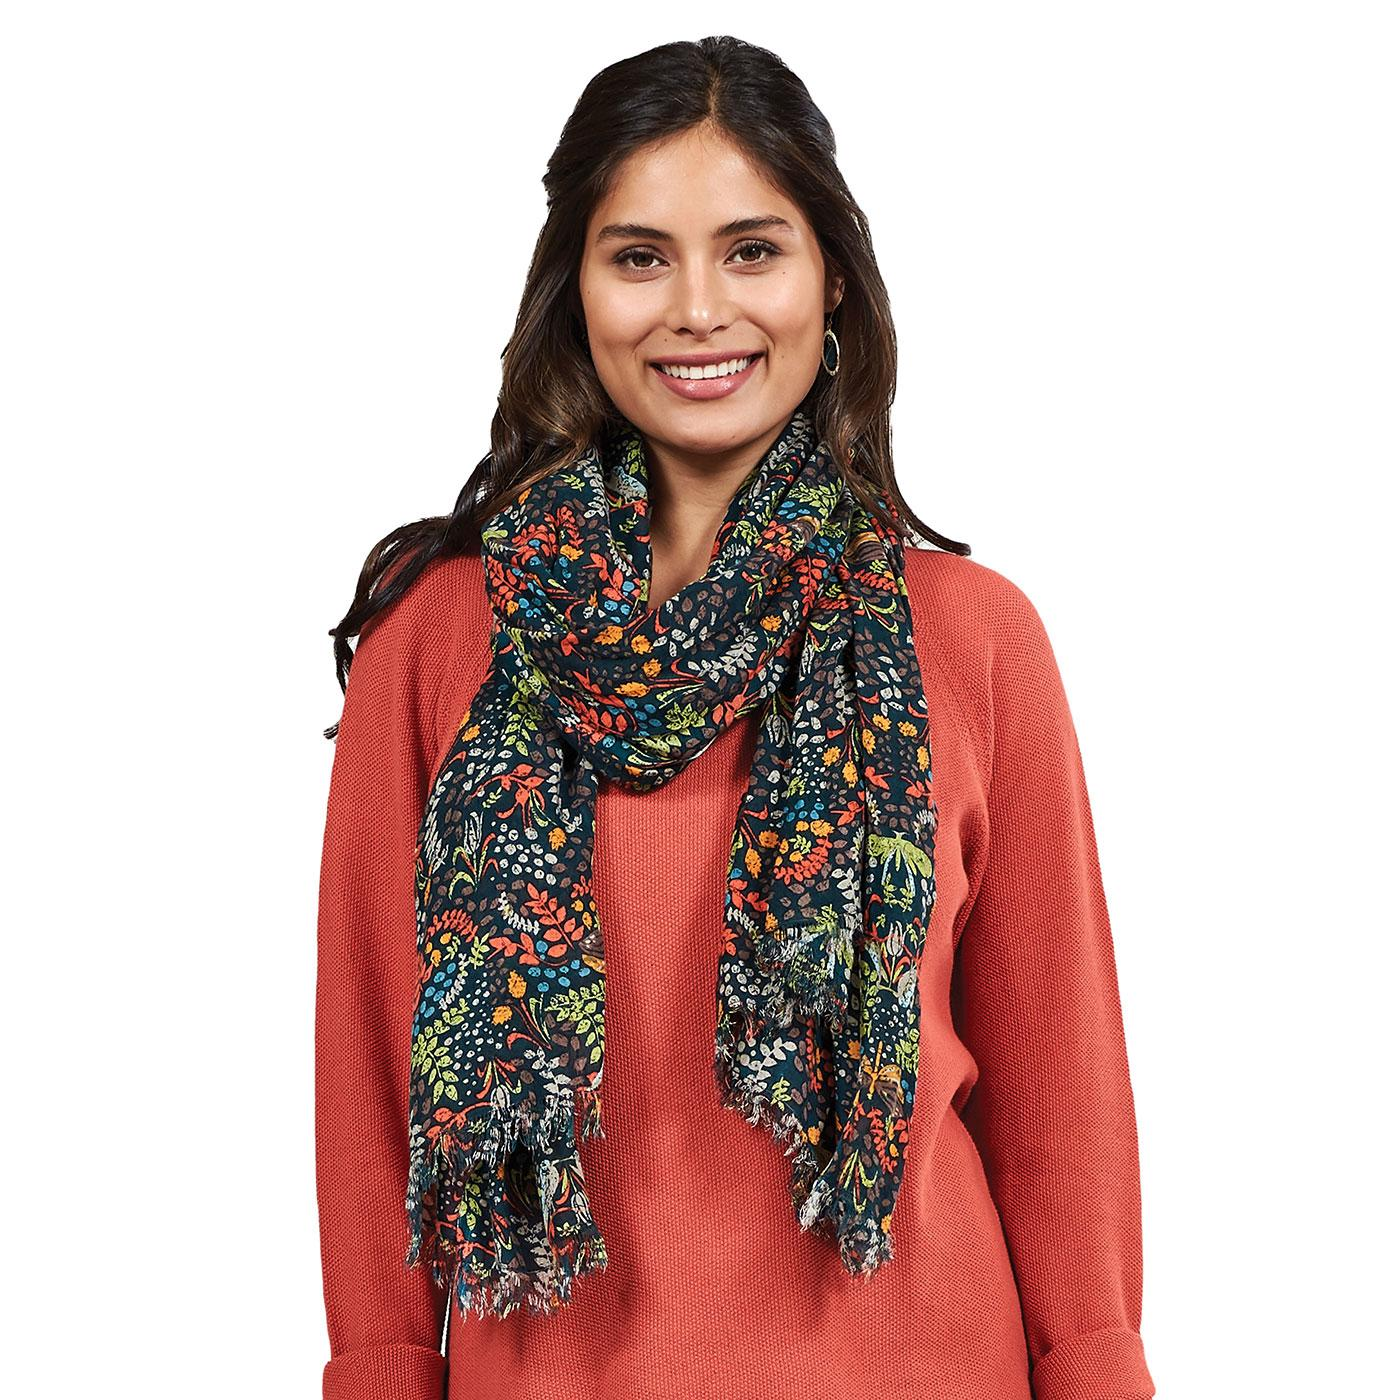 NOMADS Retro Woven Songbird Print Scarf in Myrtle